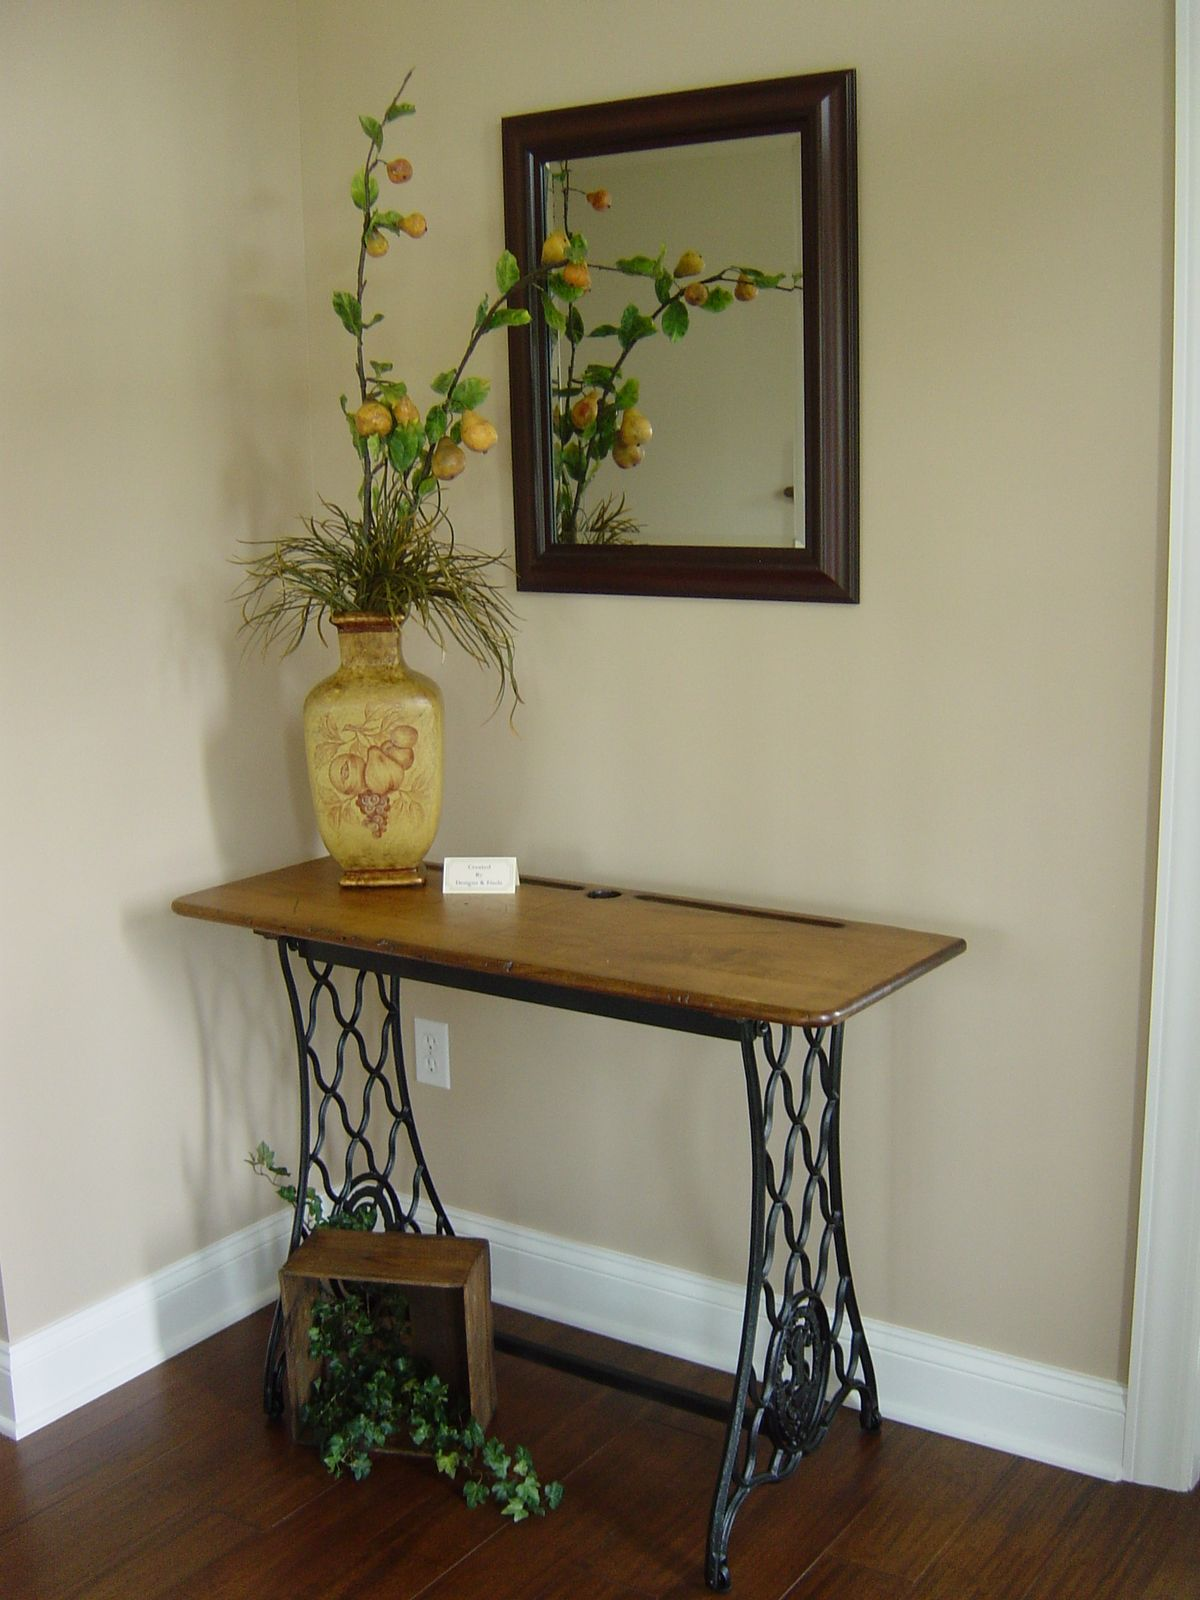 D F Table Repurposed Sewing Machine Base With An Old School Desk Top My Salvage Finds And